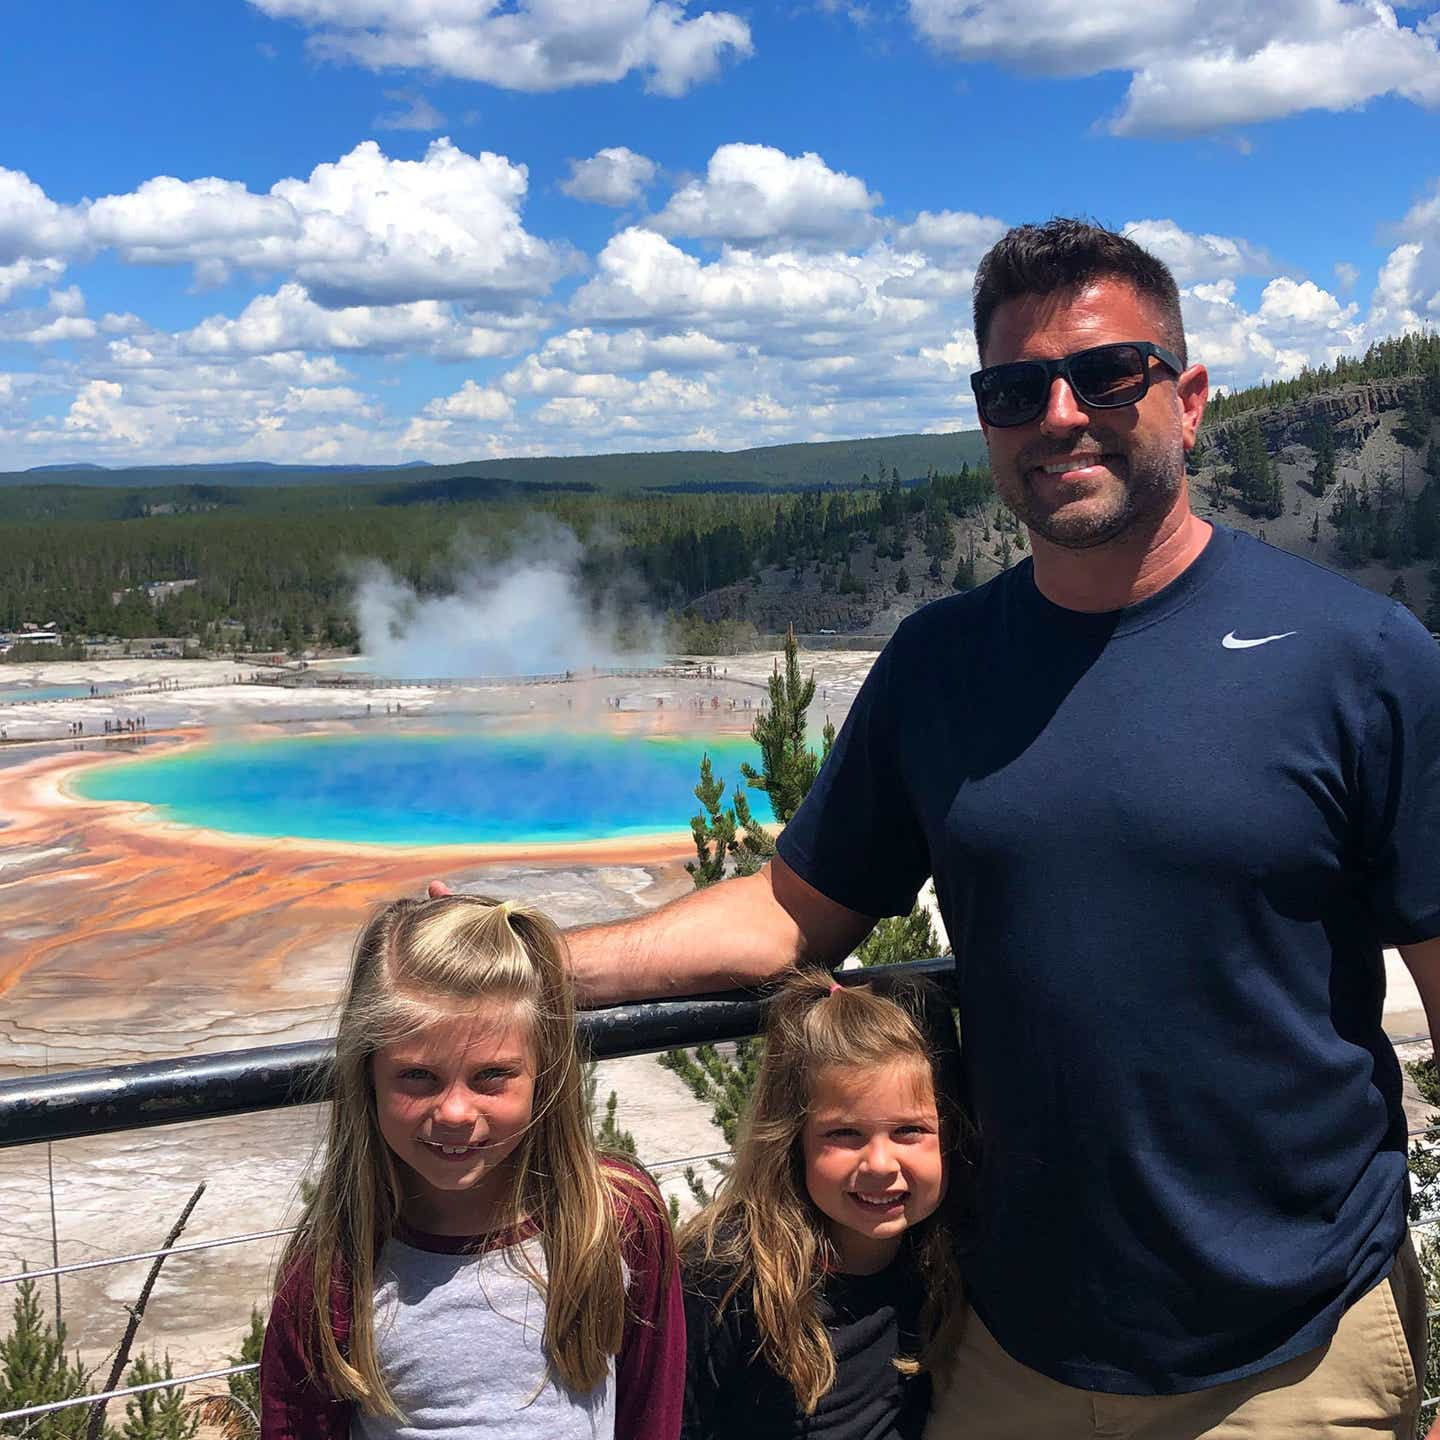 Author, Chris Johnstons' husband, Josh (far-left), stands in front of the Grand Prismatic Springs Springs at Yellowstone National Park with their daughters, Kyndall (front-left), and Kyler (front-right).